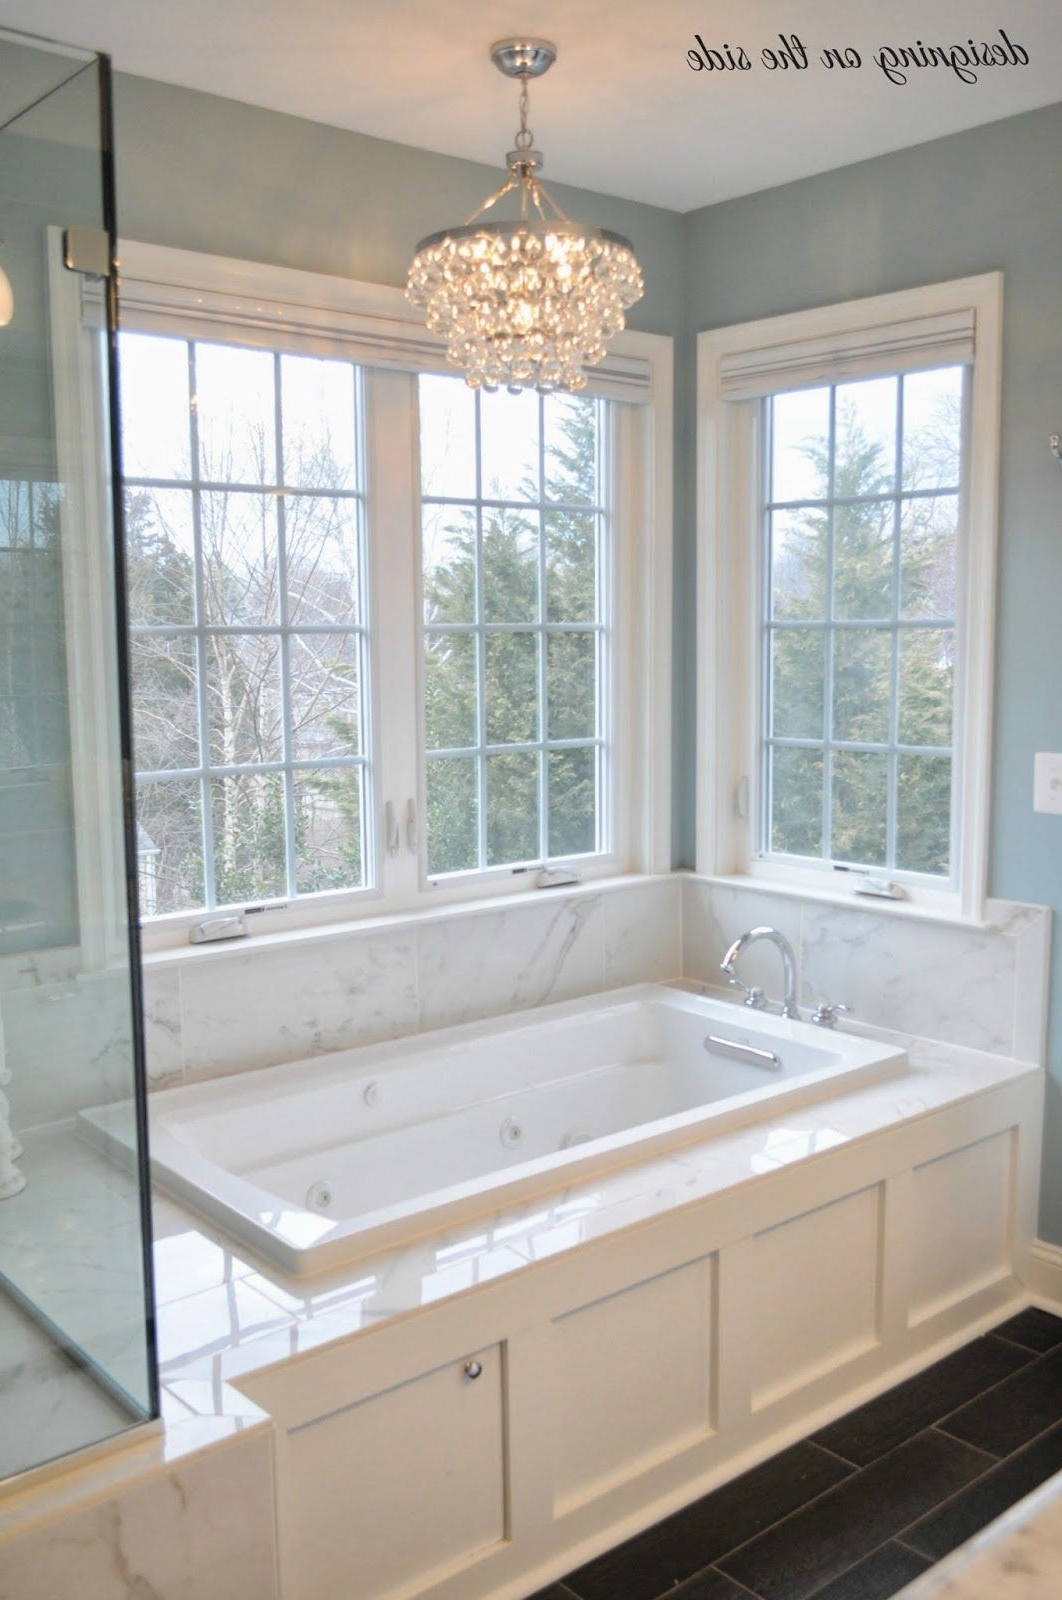 Famous Master Bath, Marble Tile, Sw Rain, Crystal Chandelier, Tile That Throughout Crystal Chandelier Bathroom Lighting (View 4 of 15)